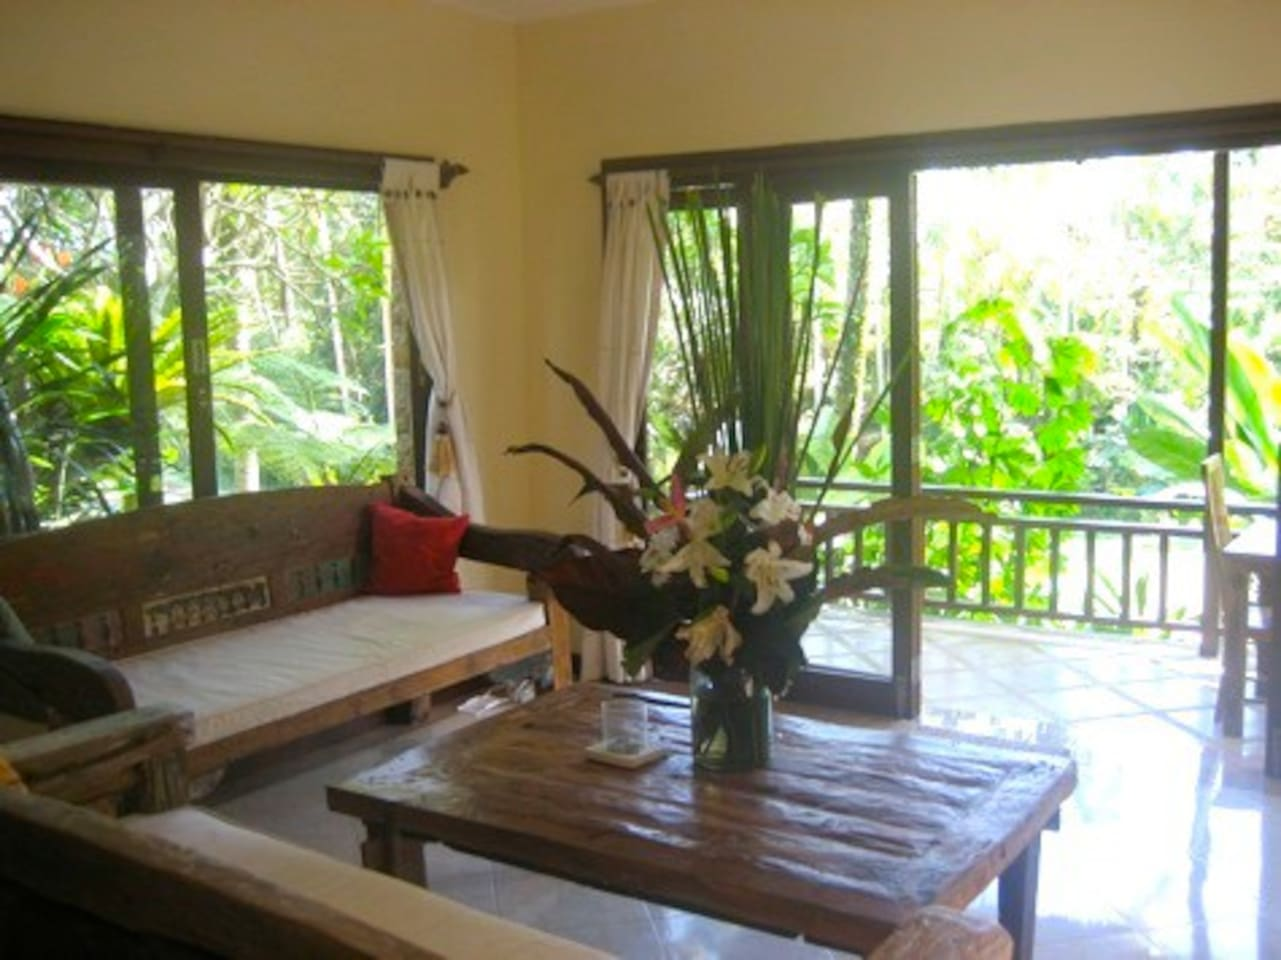 Spacious and bright family room overlooking the ricefields and coconut trees.